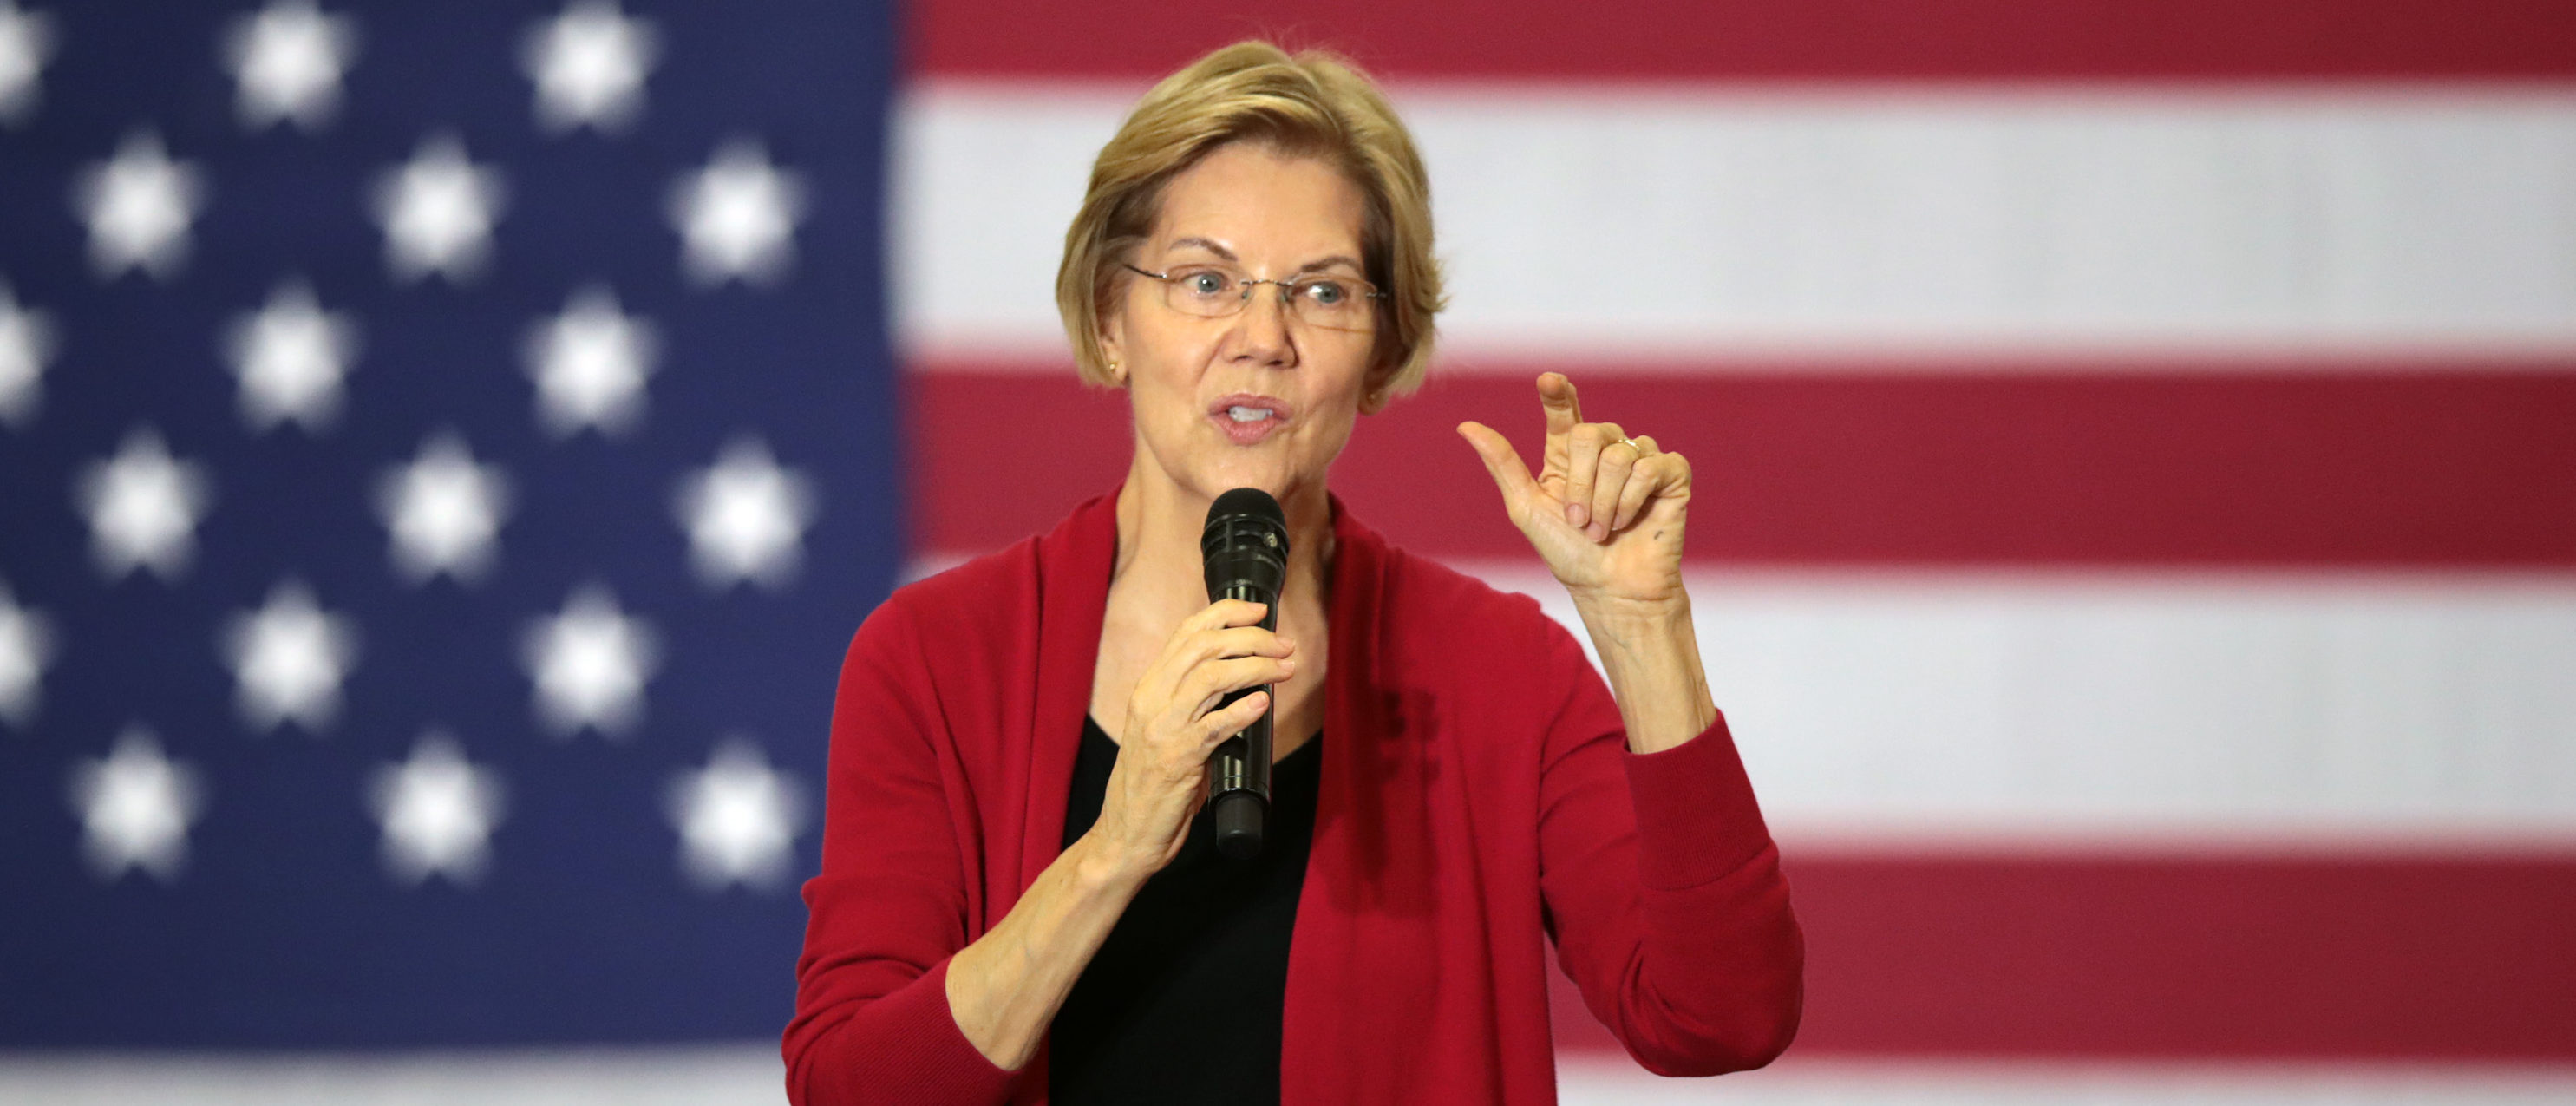 Democratic presidential candidate Sen. Elizabeth Warren (D-MA) speaks to guests during a campaign stop at Hempstead High School on Nov. 2, 2019 in Dubuque, Iowa. (Scott Olson/Getty Images)